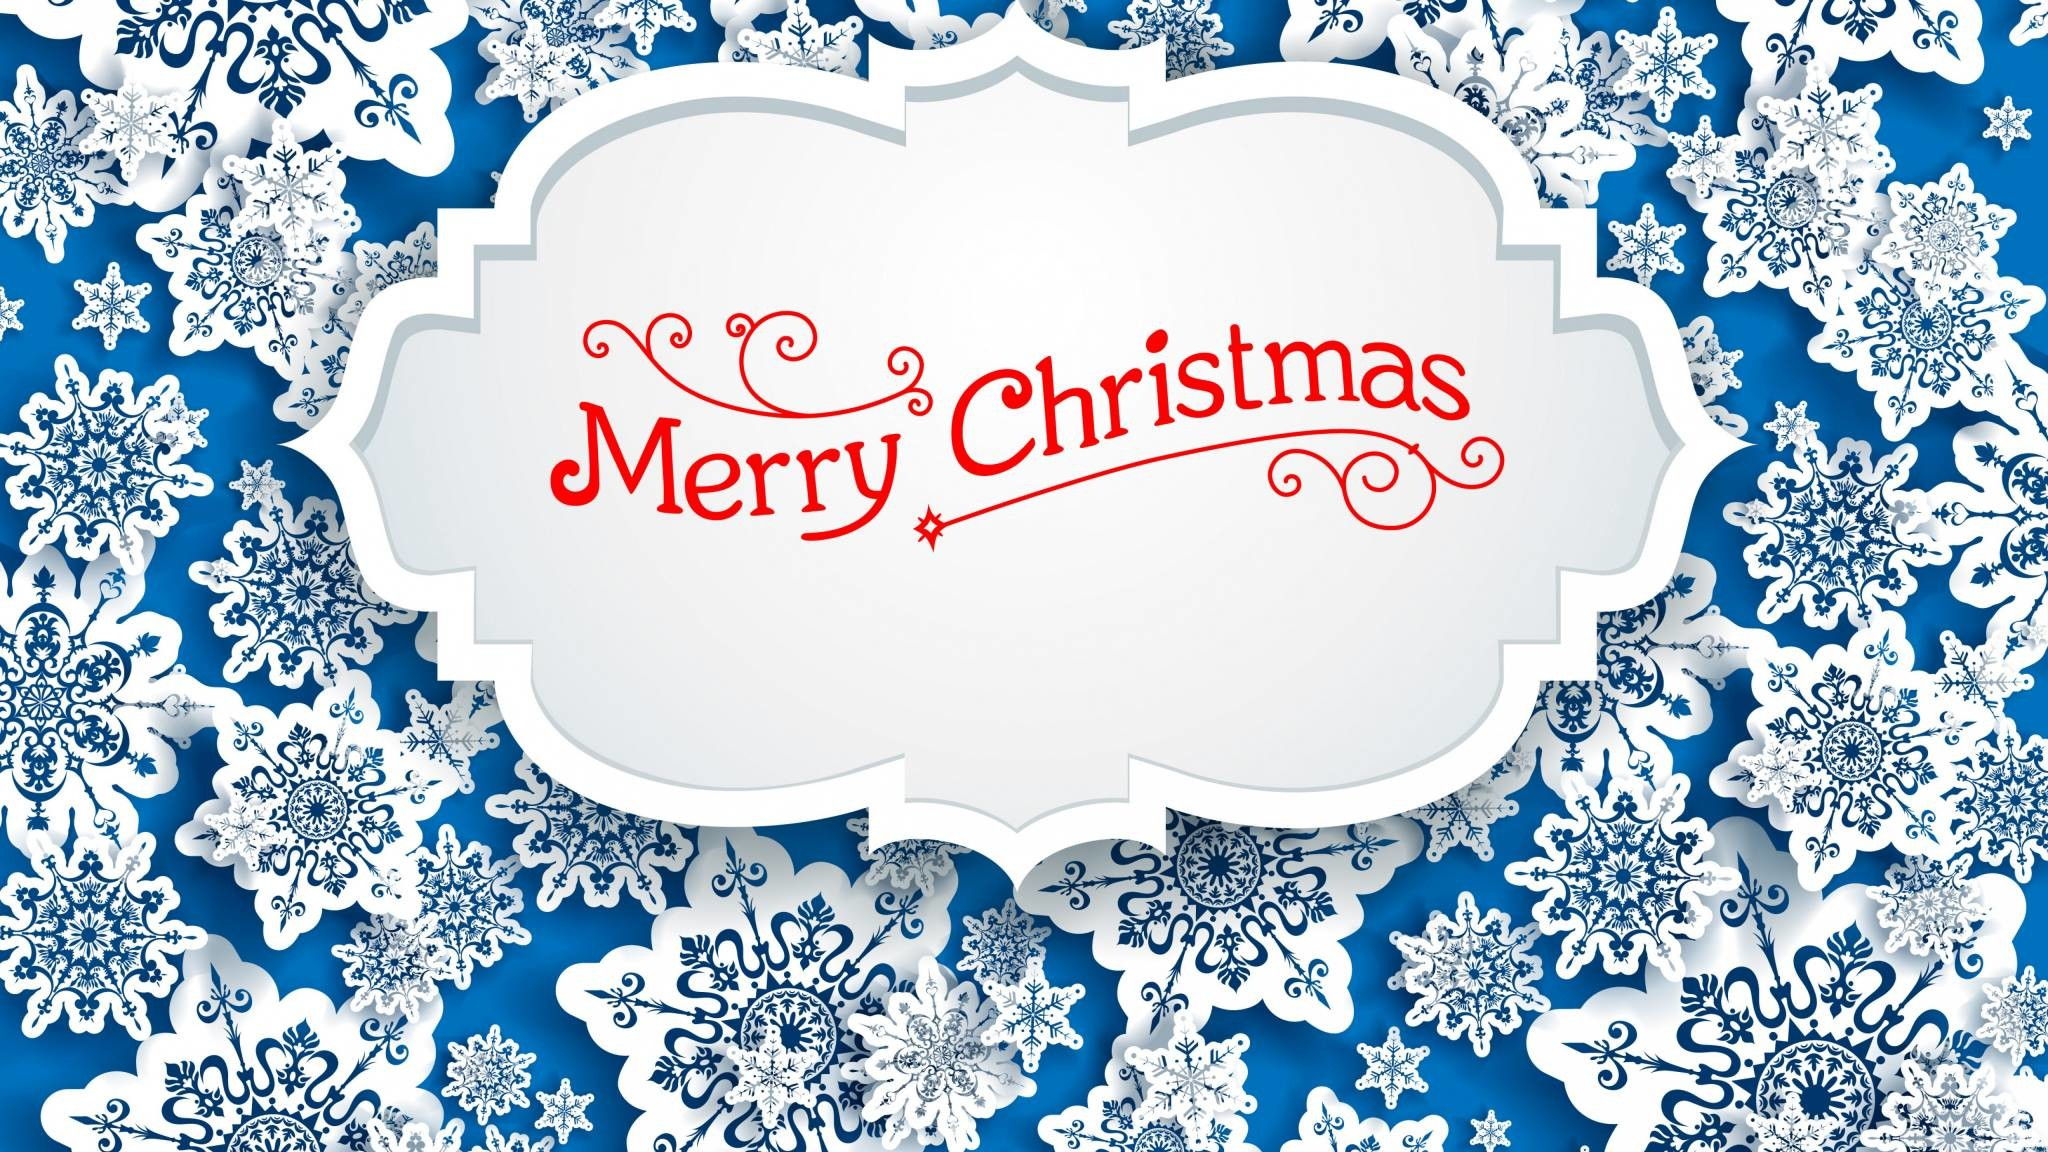 christmas peace wallpaper  69  images